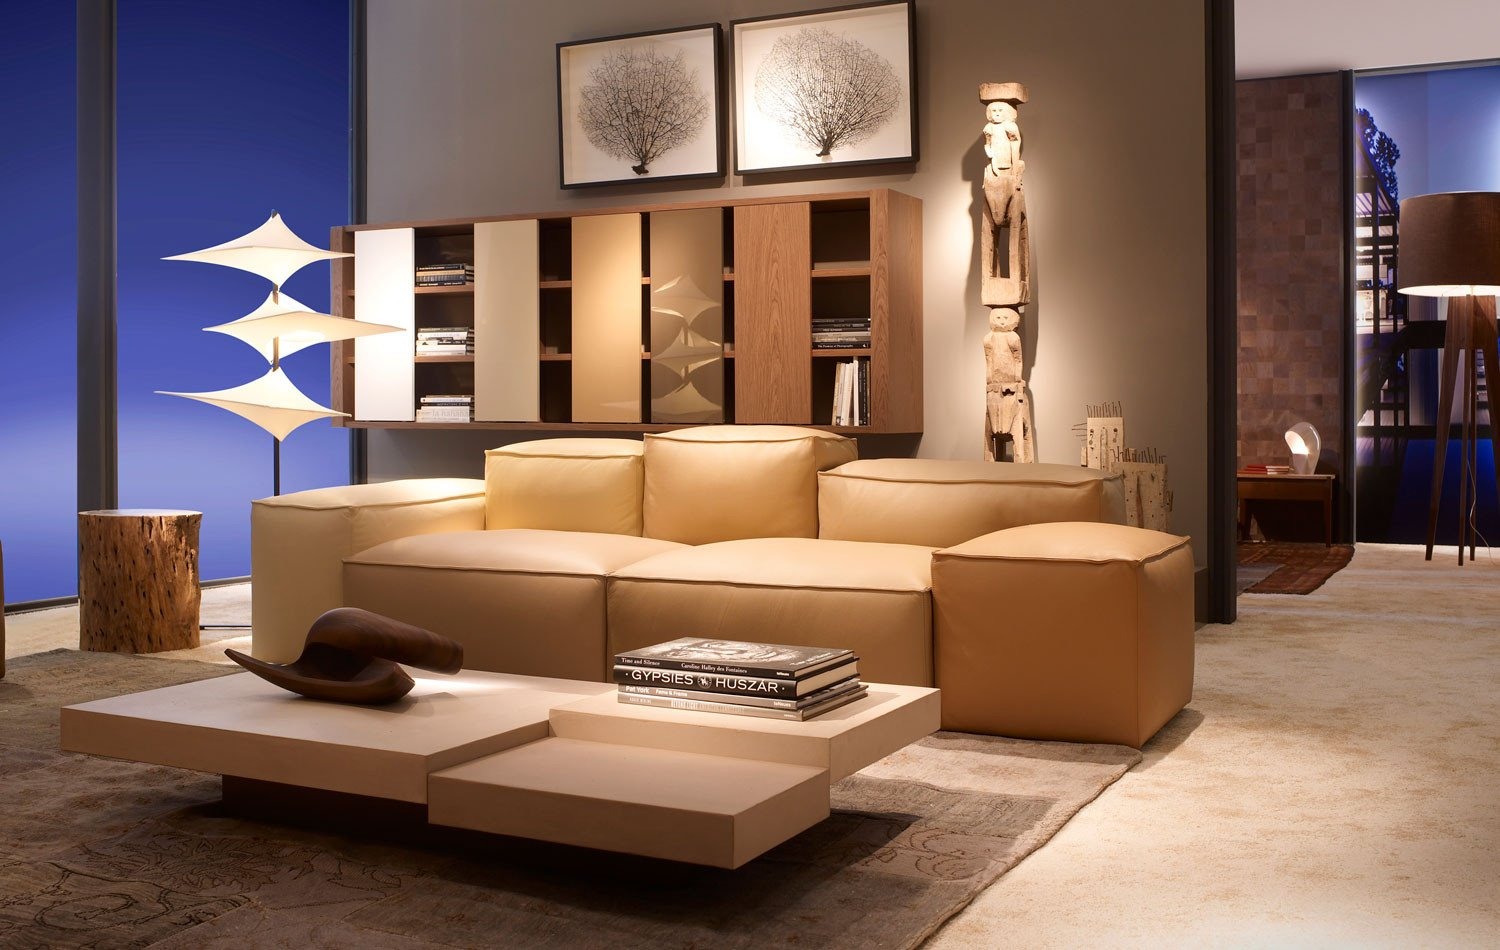 Contemporary Living Room Tables Lovely Living Room Inspiration 120 Modern sofas by Roche Bobois Part 3 3